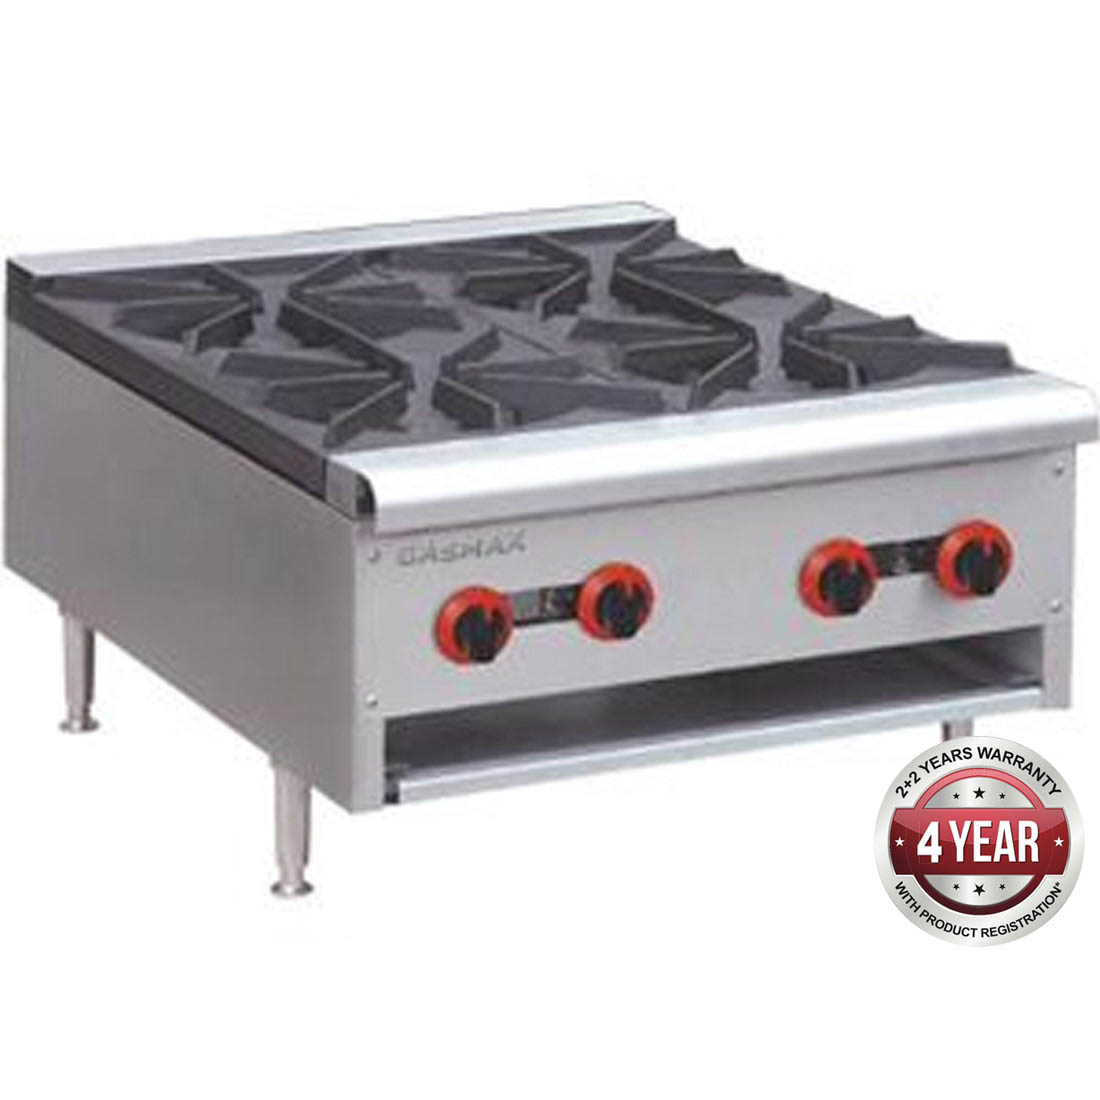 Gas Cook top 4 burner with Flame Failure - RB-4E